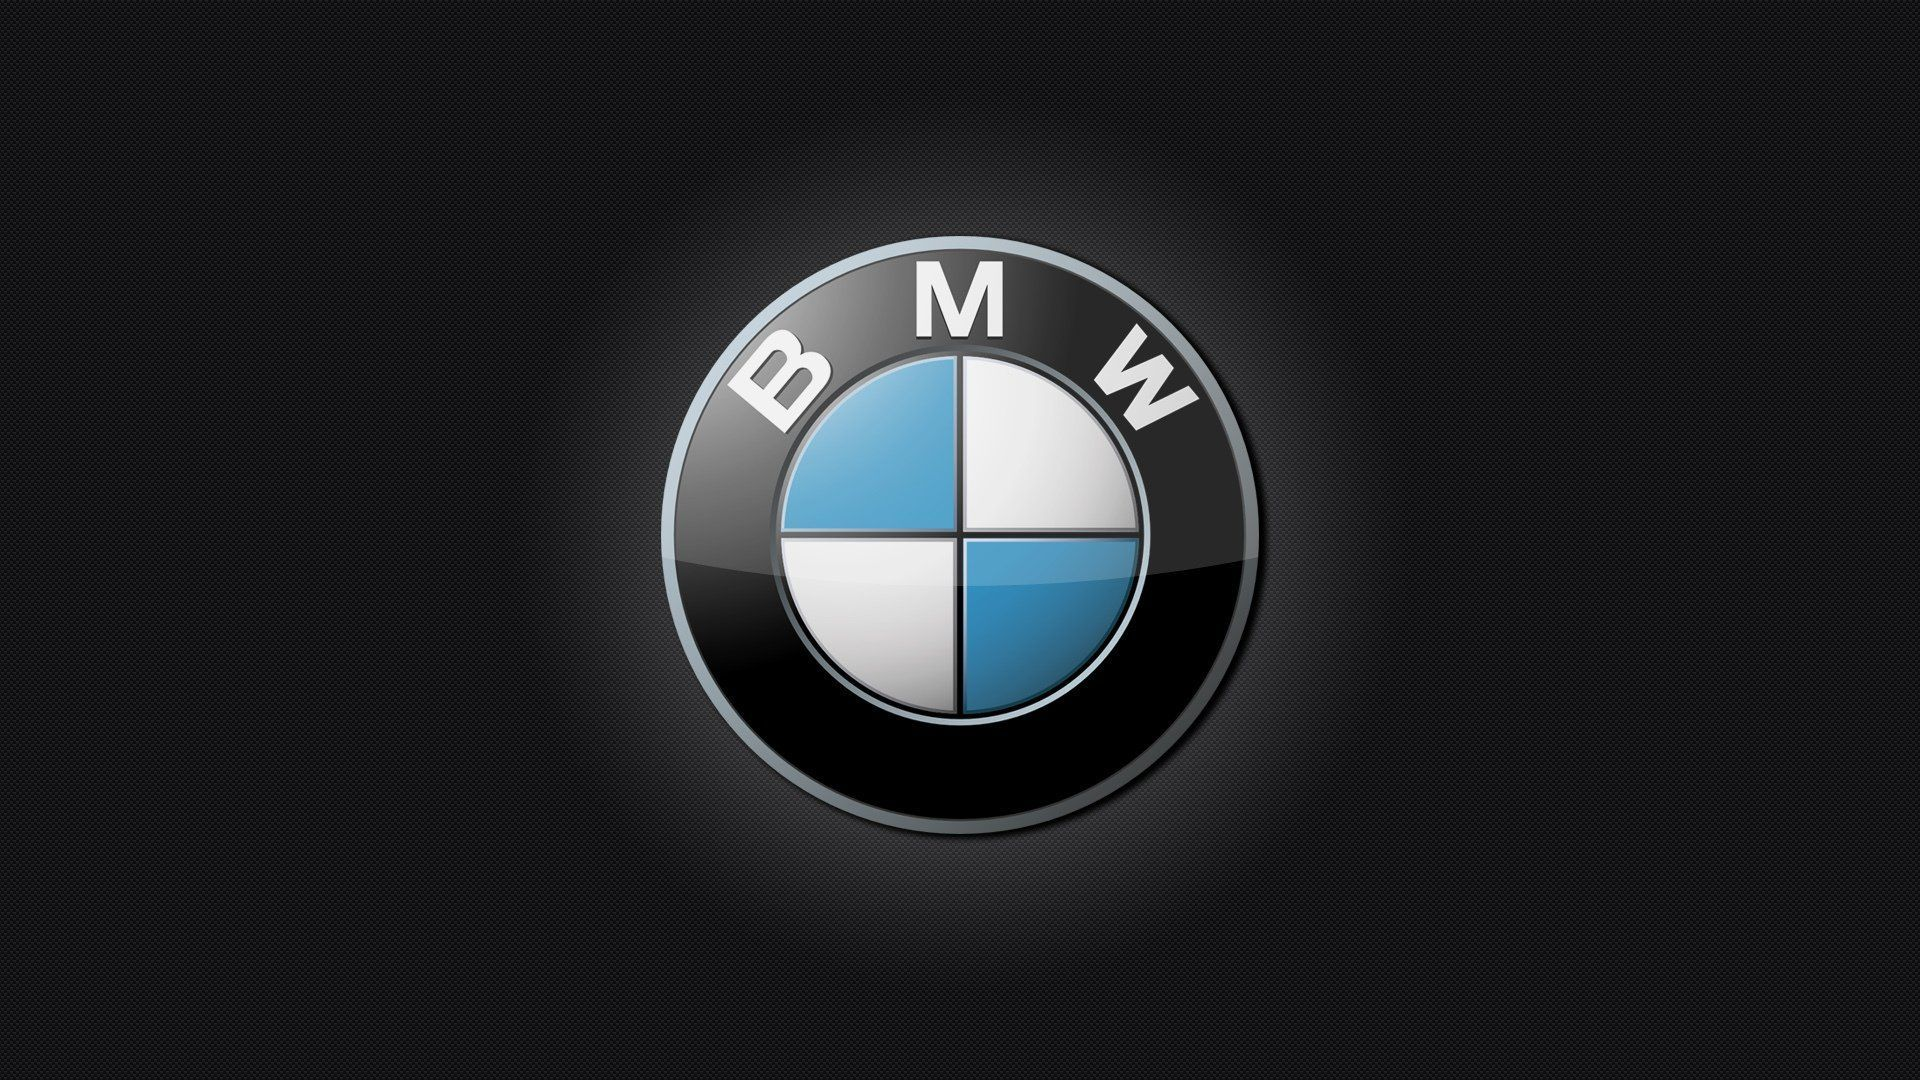 Bmw Emblem Wallpapers Top Free Bmw Emblem Backgrounds Wallpaperaccess